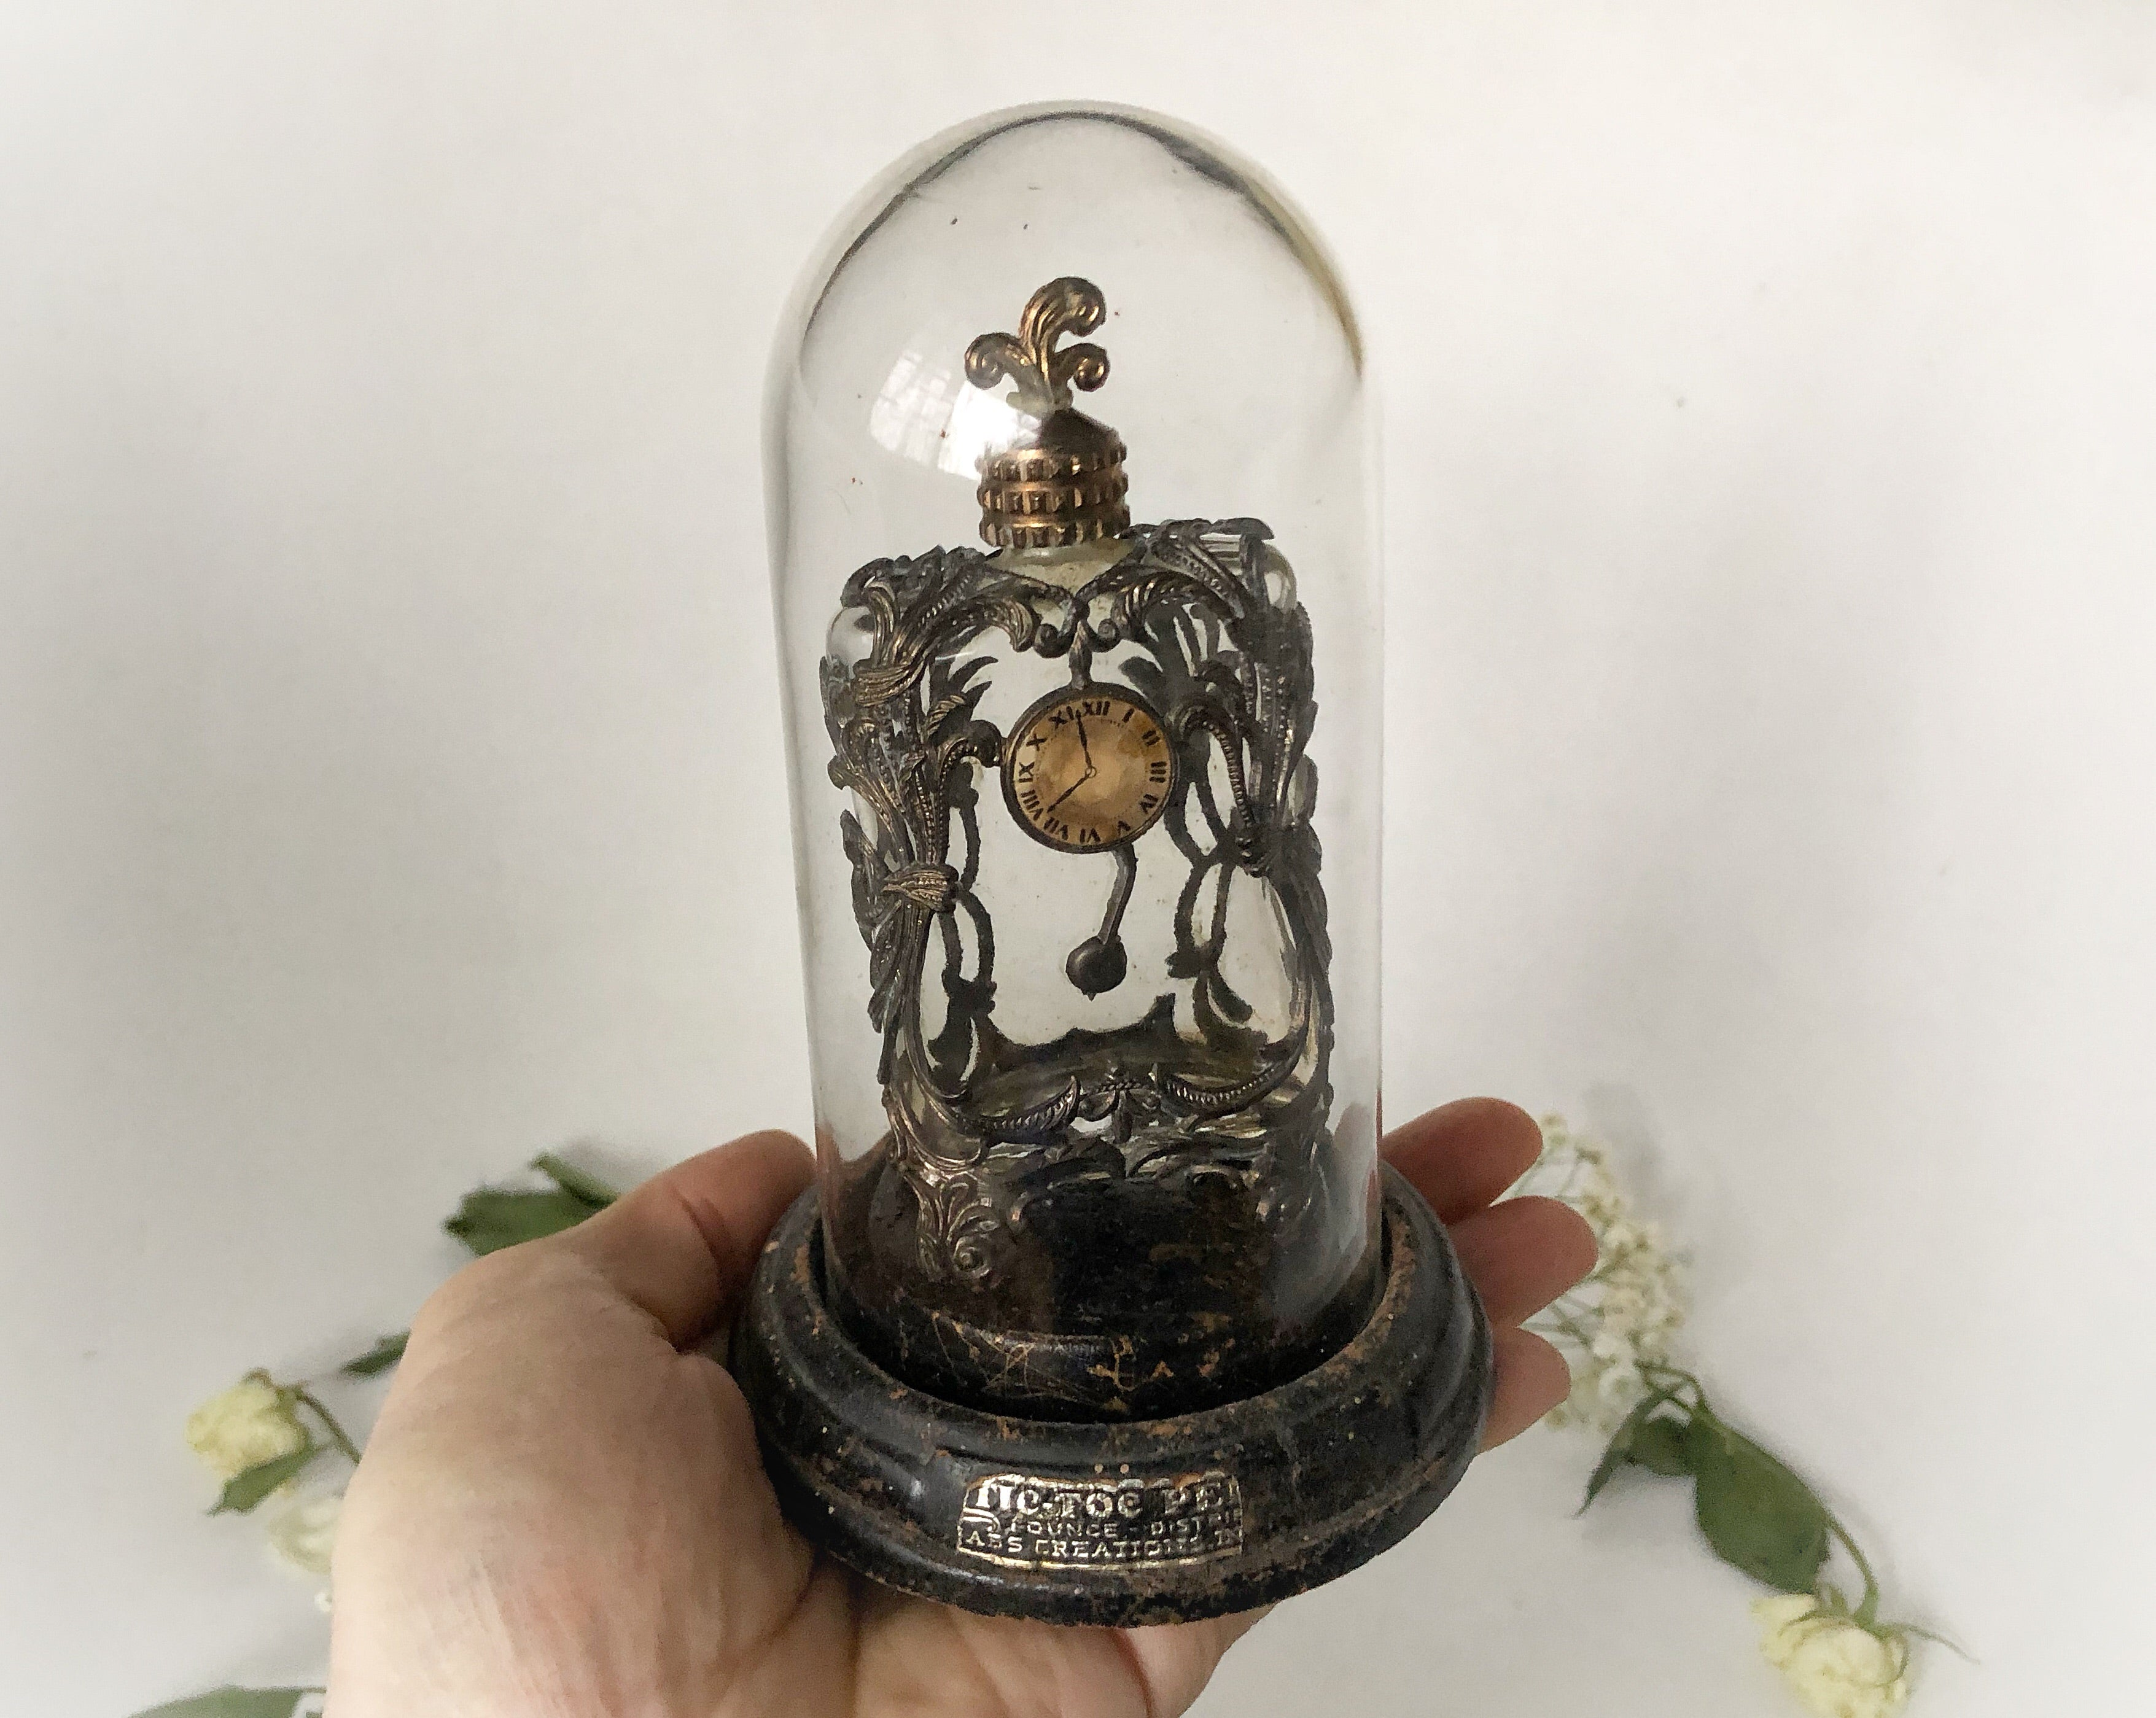 Antique Dome Clock Perfume Bottle